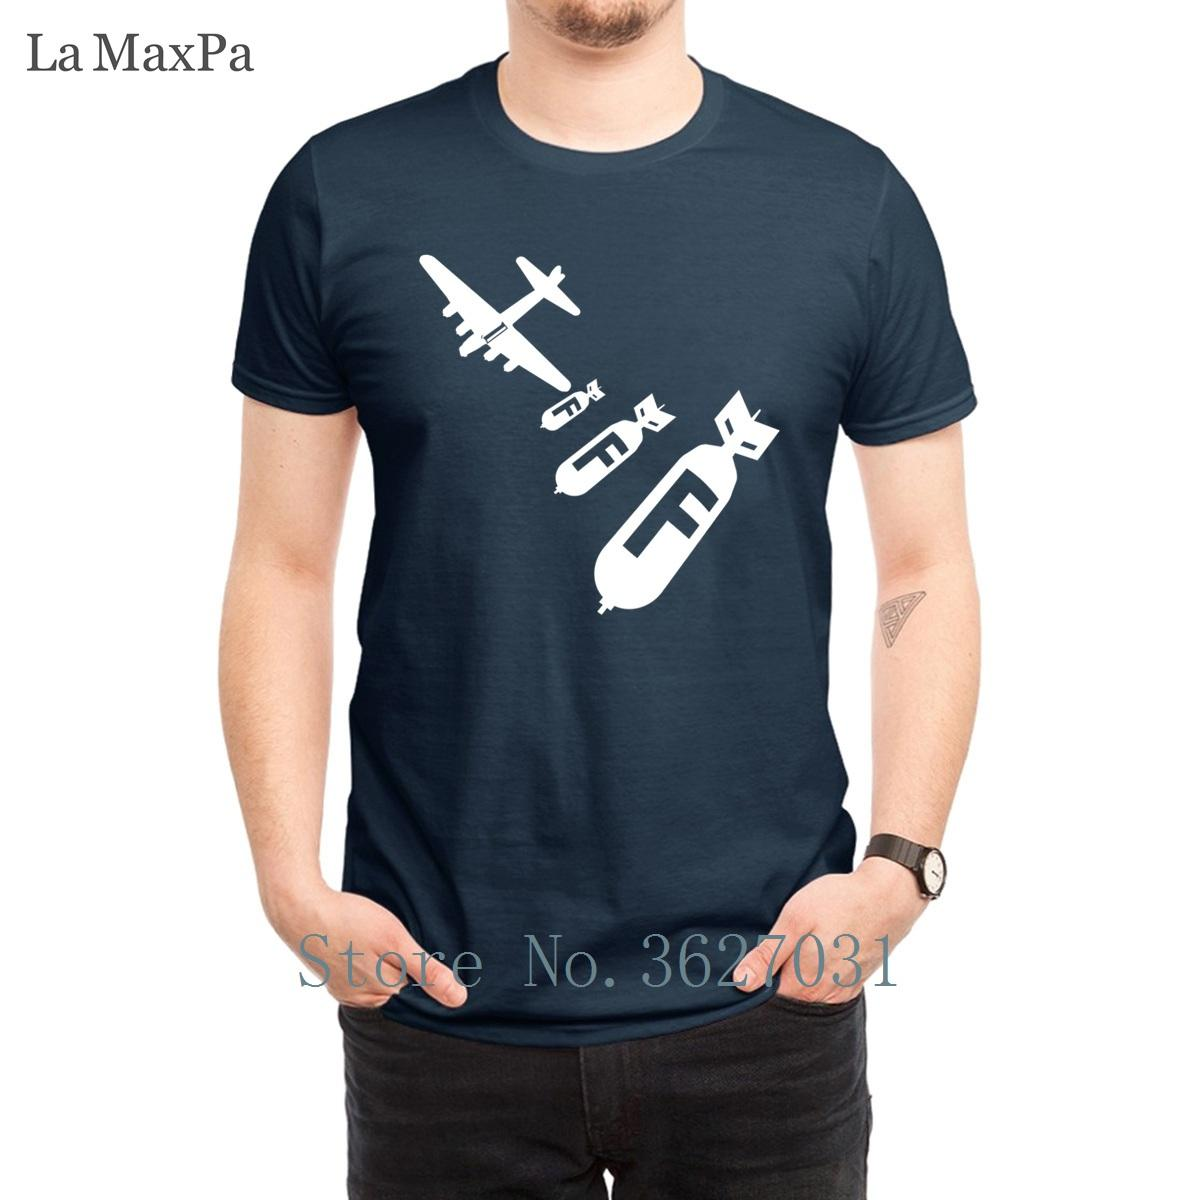 Créature Loisirs Menss T-shirt Dropping F Bombes T-shirts Fun 2018 Col rond Casual pour hommes T-shirt Pour Menss Hiphop